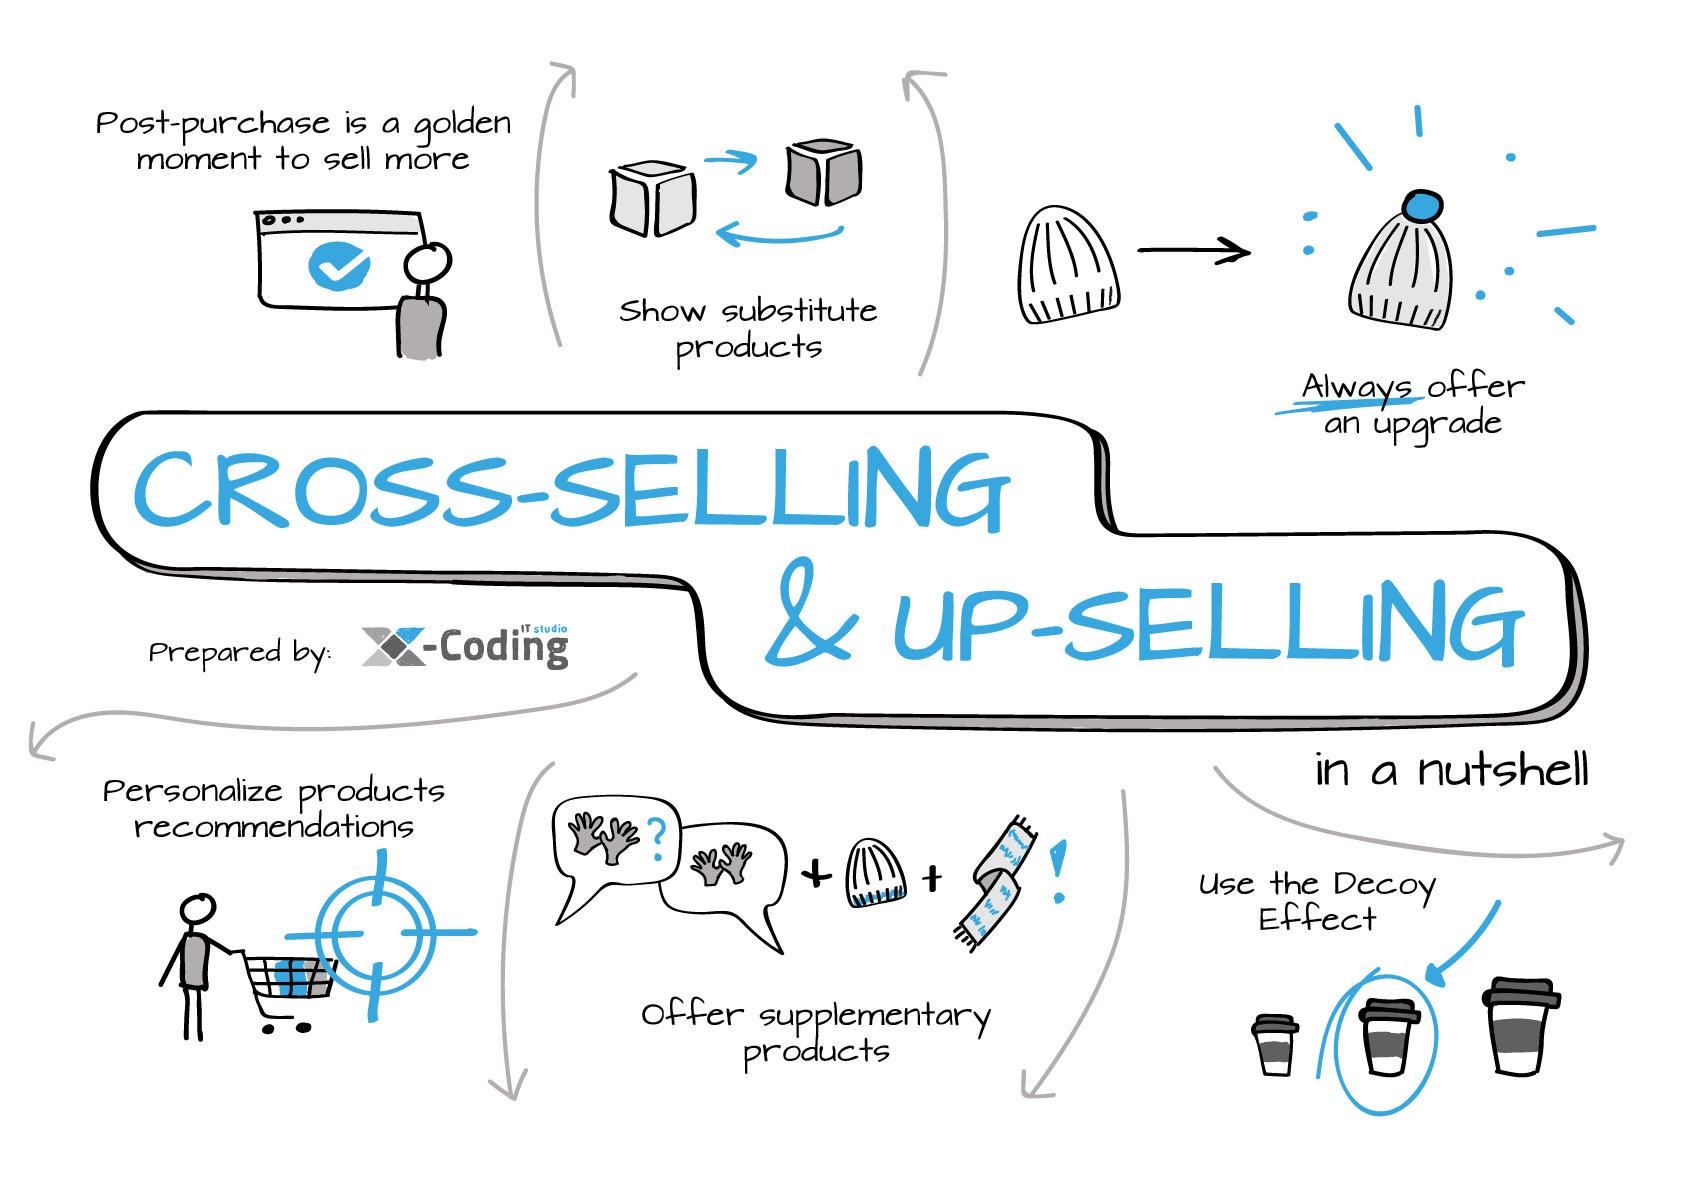 cross-selling up-selling infographic